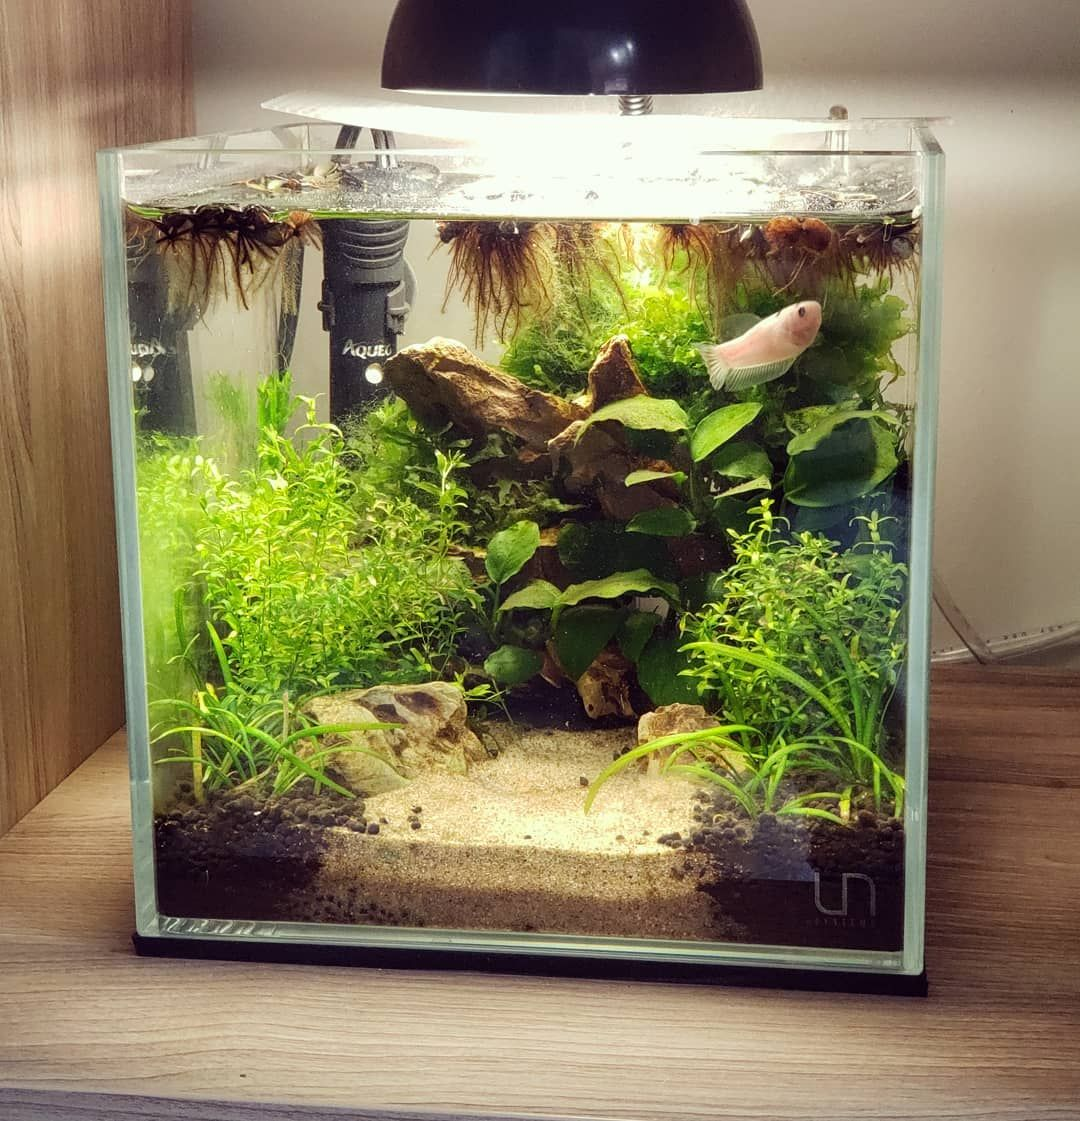 45 Nano Planted Tank Design Inspirations To Displayed At The Office Rooms And Living Room That Will Eliminate Your High Stress45 Nano Planted Tank Design Insp Betta Fish Nature Aquarium Fish